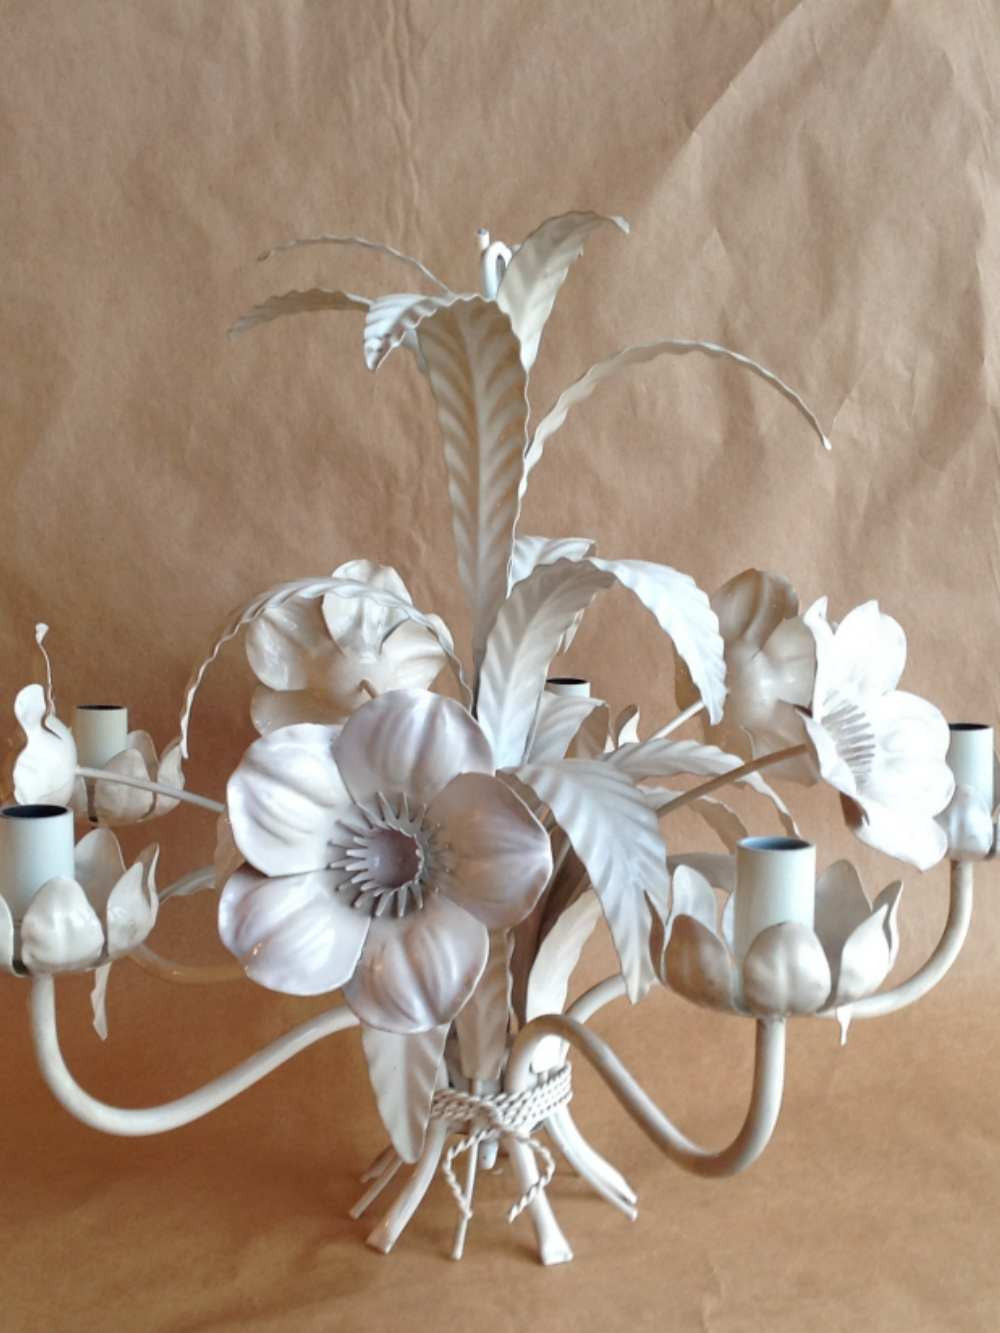 Vintage Tole Chandelier - Lavender And White - Mercato Antiques - 1 - Vintage Tole Chandelier - Lavender And White